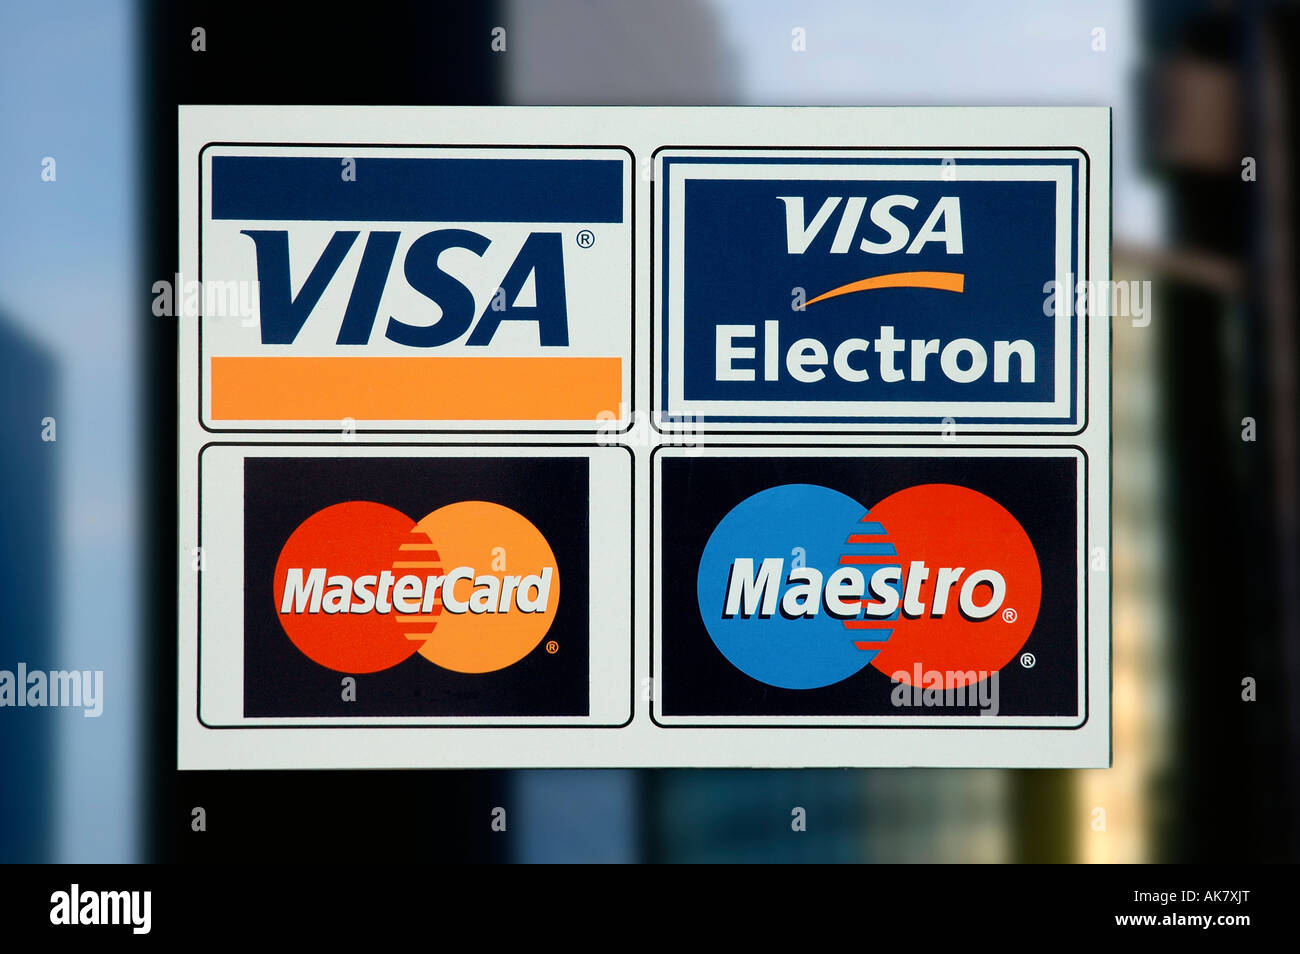 Credit card signs stock photo 14914367 alamy credit card signs colourmoves